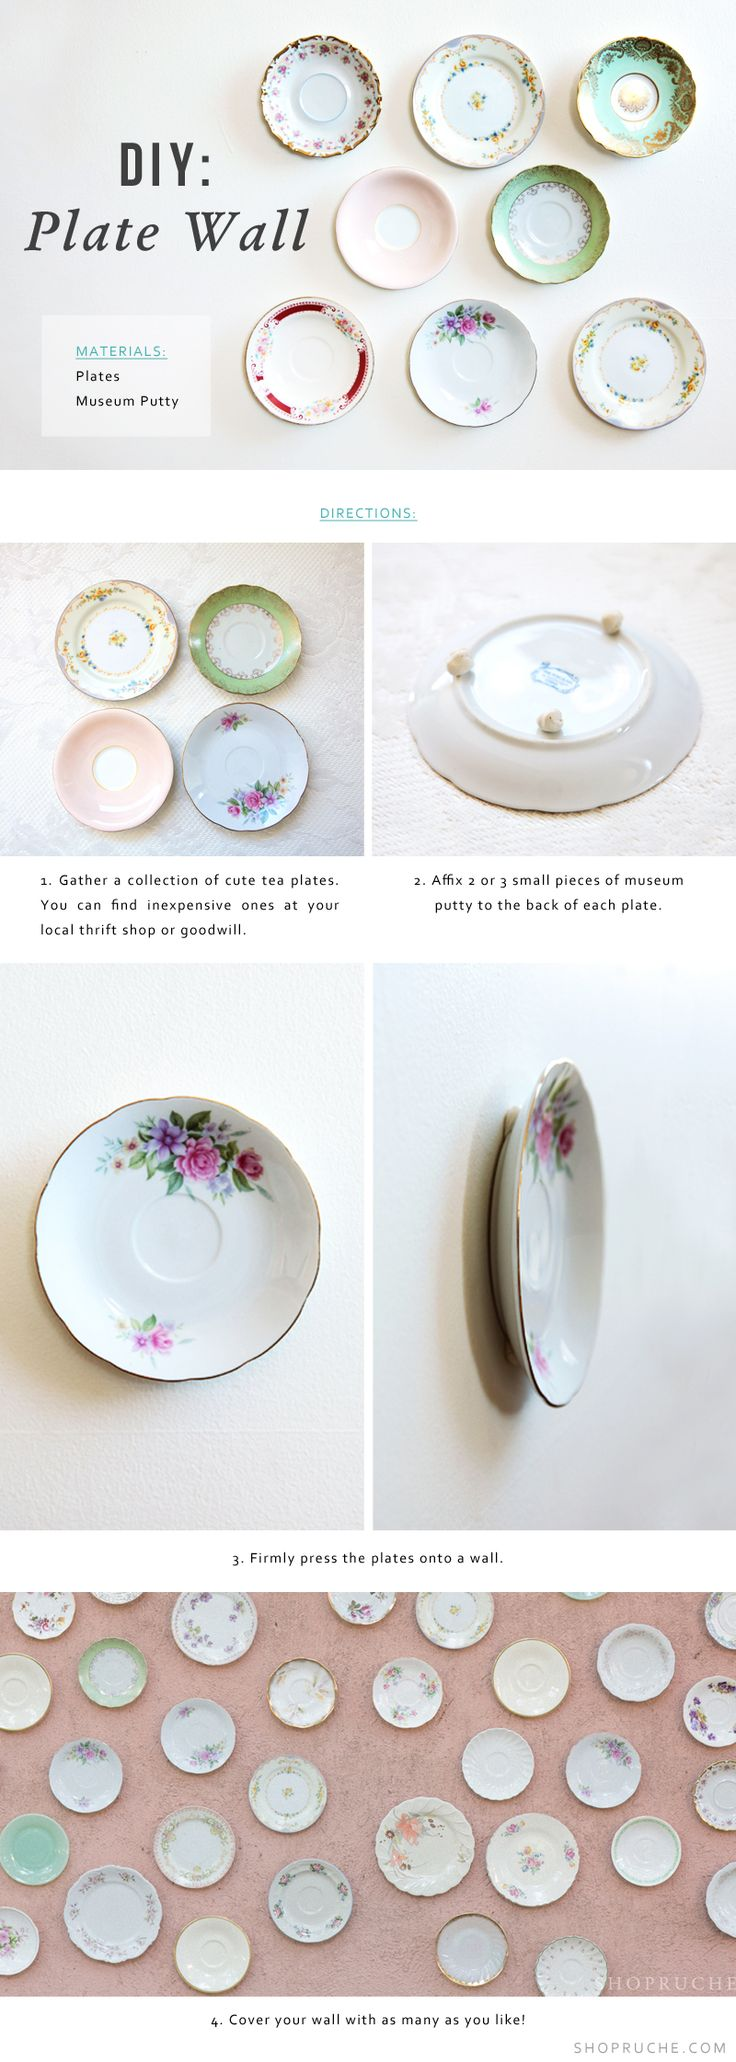 Best 25 plate wall ideas on pinterest plates on wall eclectic for a vintage inspired style we love the idea of displaying vintage plates on plates on wallplate wall decorhanging amipublicfo Image collections